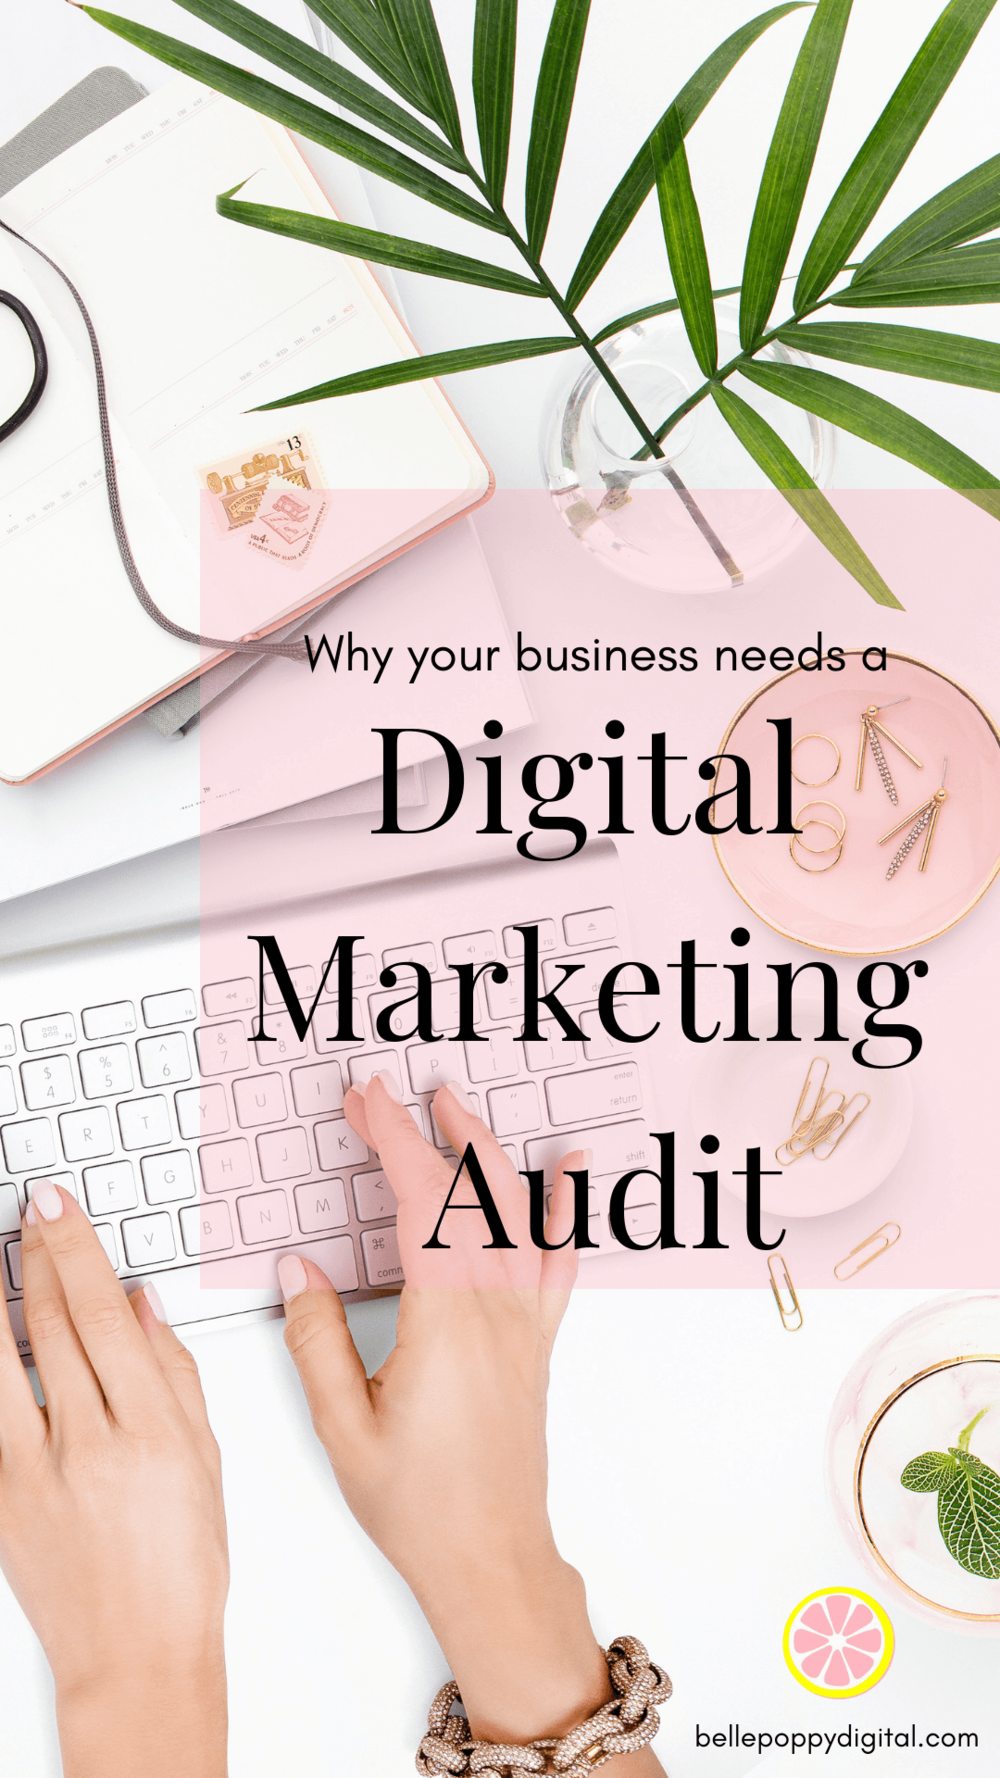 Why Your Business Needs a Digital Marketing Audit